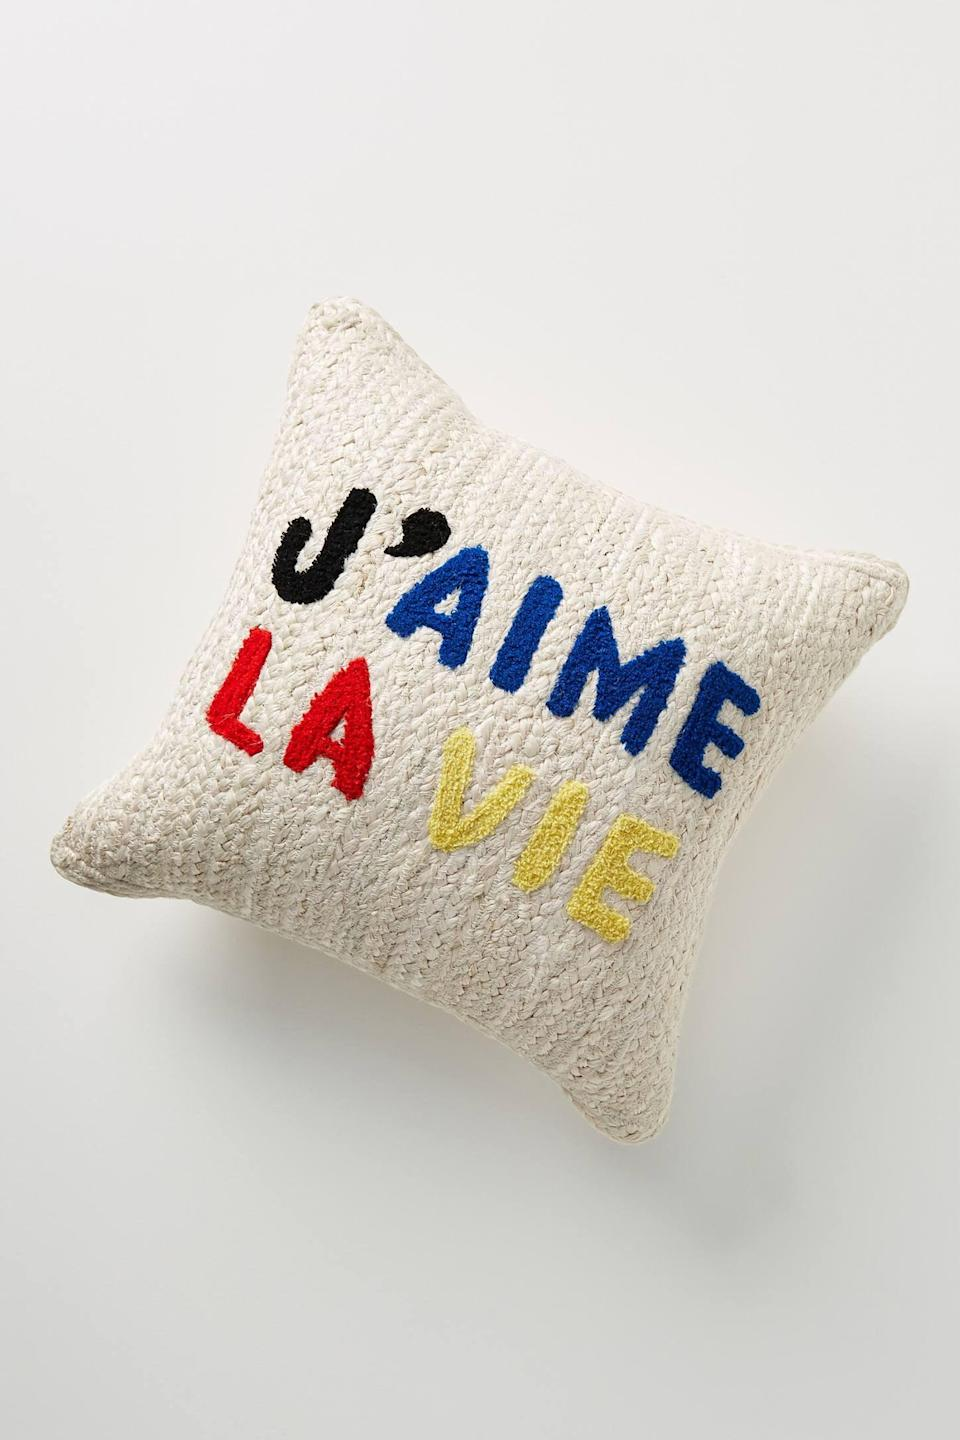 "<p>This <a href=""https://www.popsugar.com/buy/Clare-V-Anthropologie-Maisonette-Jute-Pillow-562168?p_name=Clare%20V.%20for%20Anthropologie%20Maisonette%20Jute%20Pillow&retailer=anthropologie.com&pid=562168&price=68&evar1=casa%3Aus&evar9=47360872&evar98=https%3A%2F%2Fwww.popsugar.com%2Fhome%2Fphoto-gallery%2F47360872%2Fimage%2F47361106%2FClare-V-for-Anthropologie-Maisonette-Jute-Pillow&list1=shopping%2Chome%20decor%2Cdecor%20shopping%2Chome%20shopping&prop13=api&pdata=1"" rel=""nofollow noopener"" class=""link rapid-noclick-resp"" target=""_blank"" data-ylk=""slk:Clare V. for Anthropologie Maisonette Jute Pillow"">Clare V. for Anthropologie Maisonette Jute Pillow</a> ($68) is so chic.</p>"